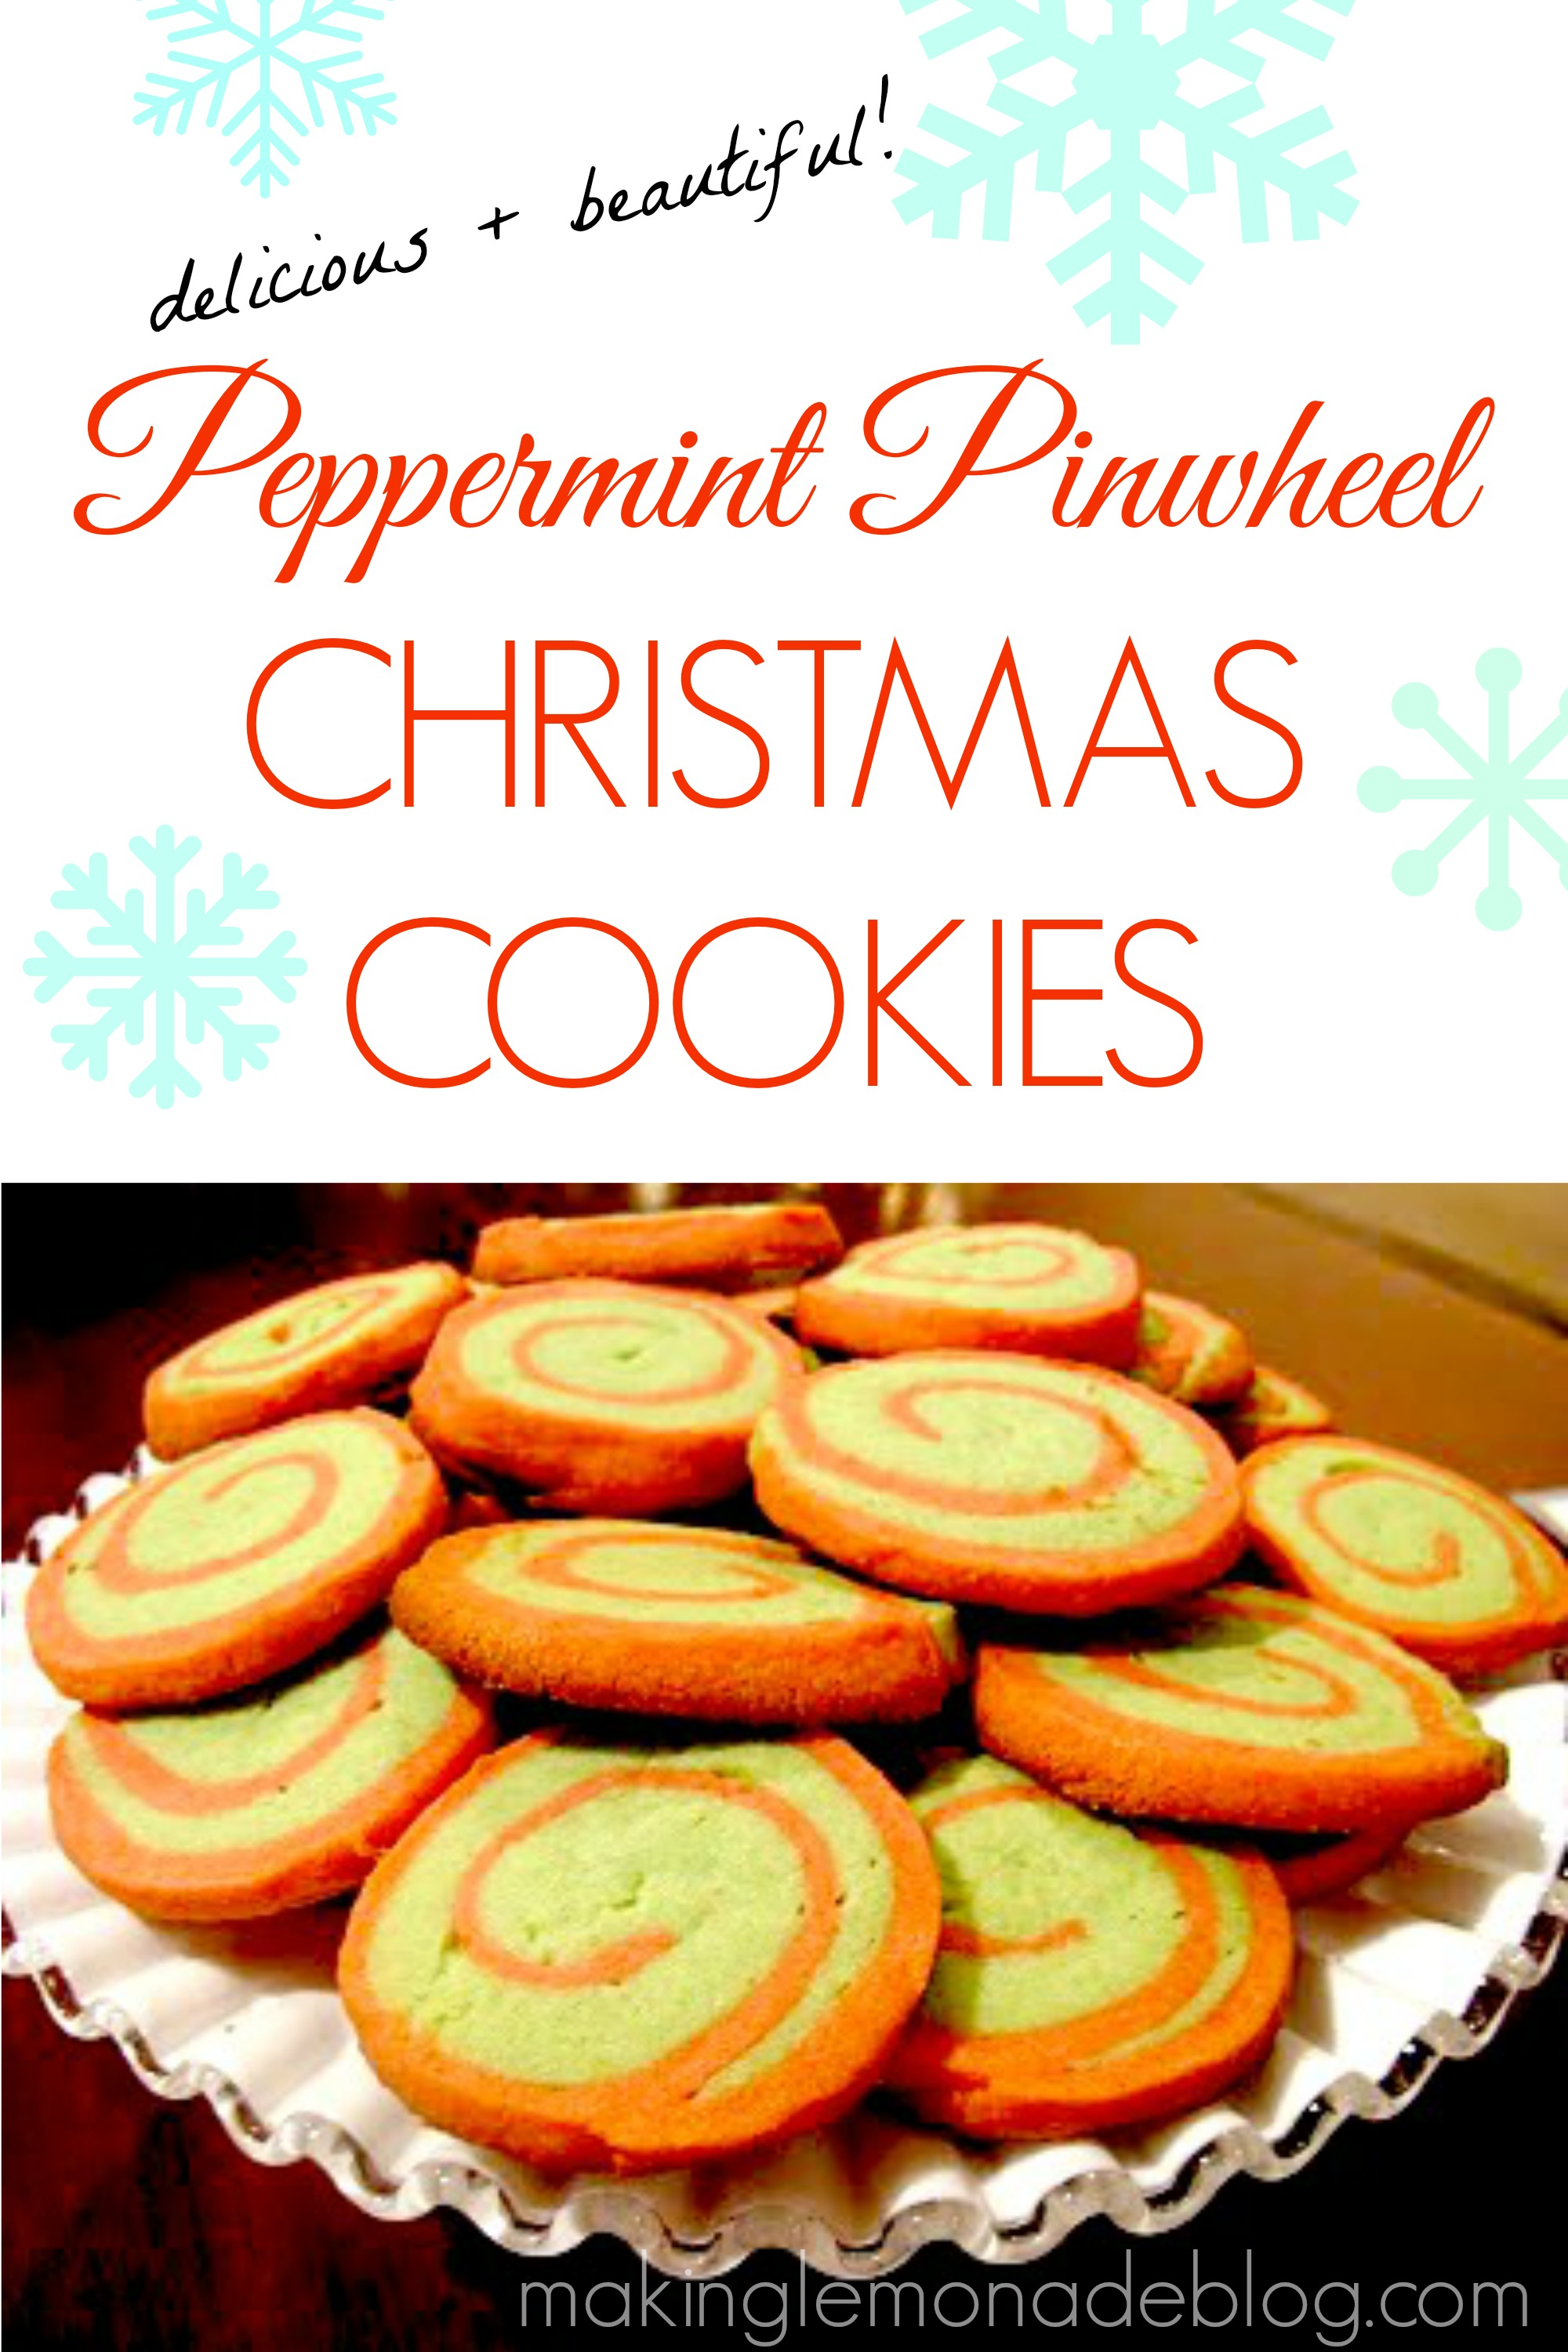 Baking Night: Peppermint Pinwheel Cookies